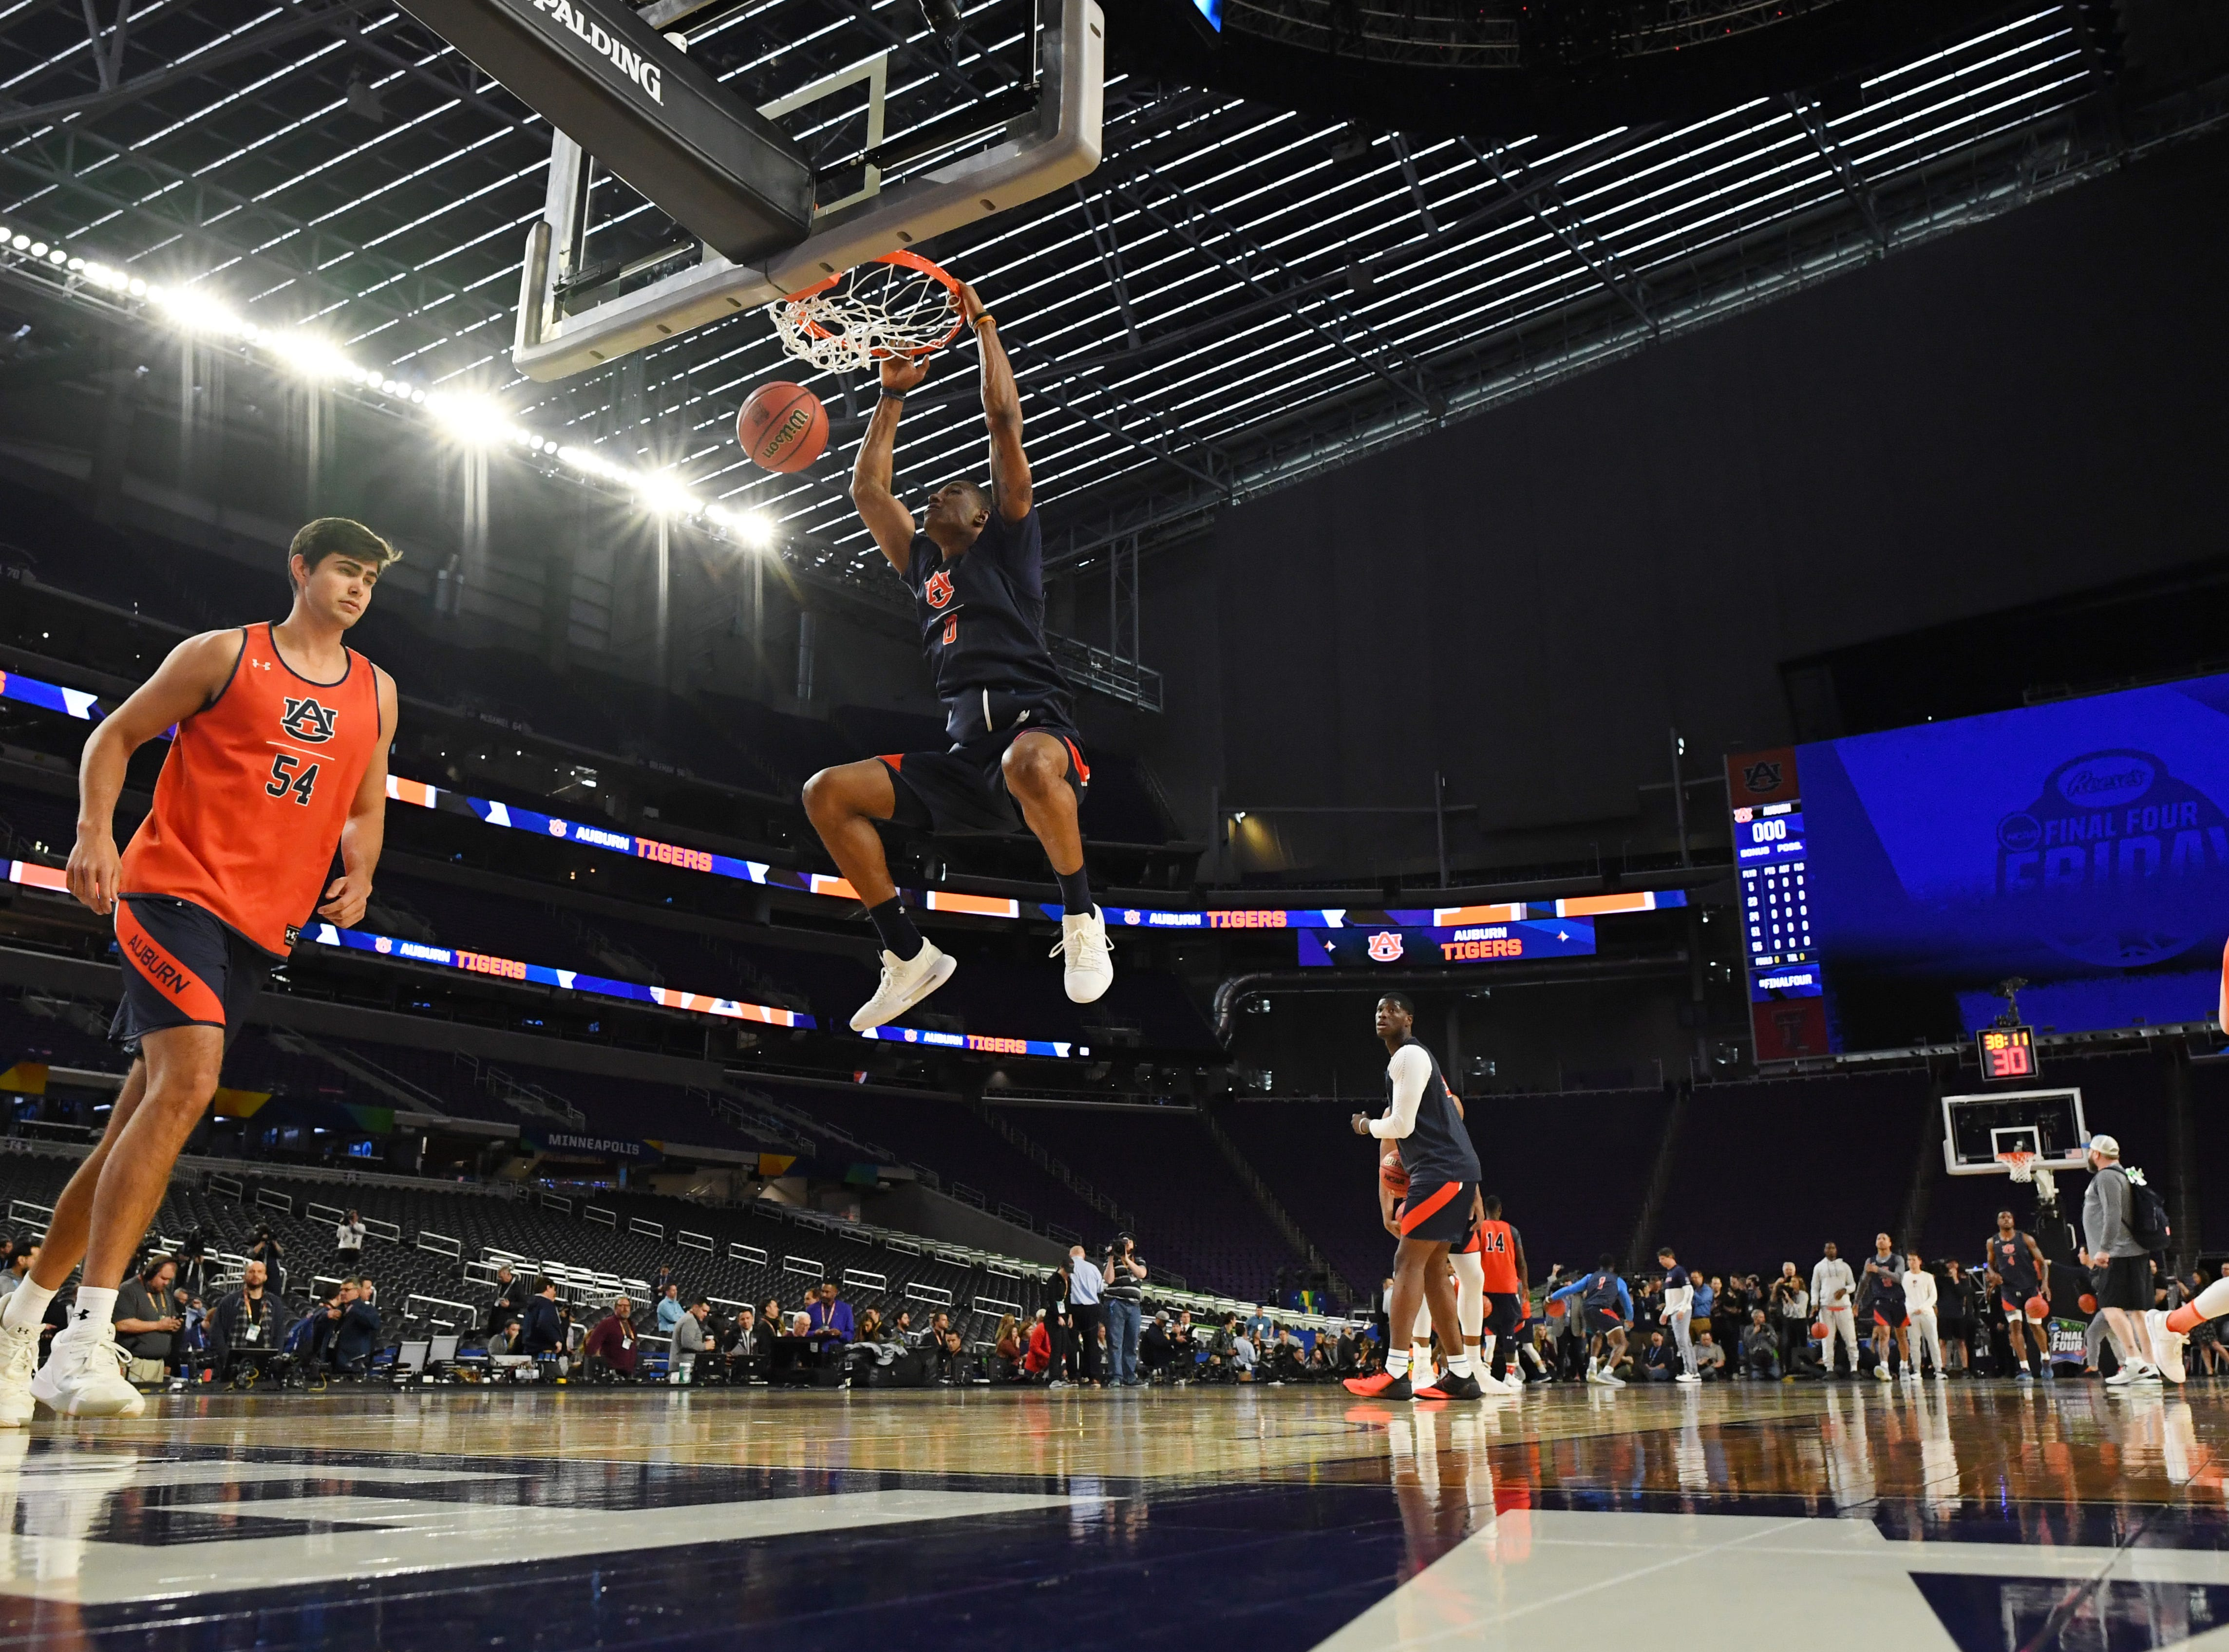 Apr 5, 2019; Minneapolis, MN, USA; Auburn Tigers forward Horace Spencer (0) during practice for the 2019 men's Final Four at US Bank Stadium. Mandatory Credit: Bob Donnan-USA TODAY Sports